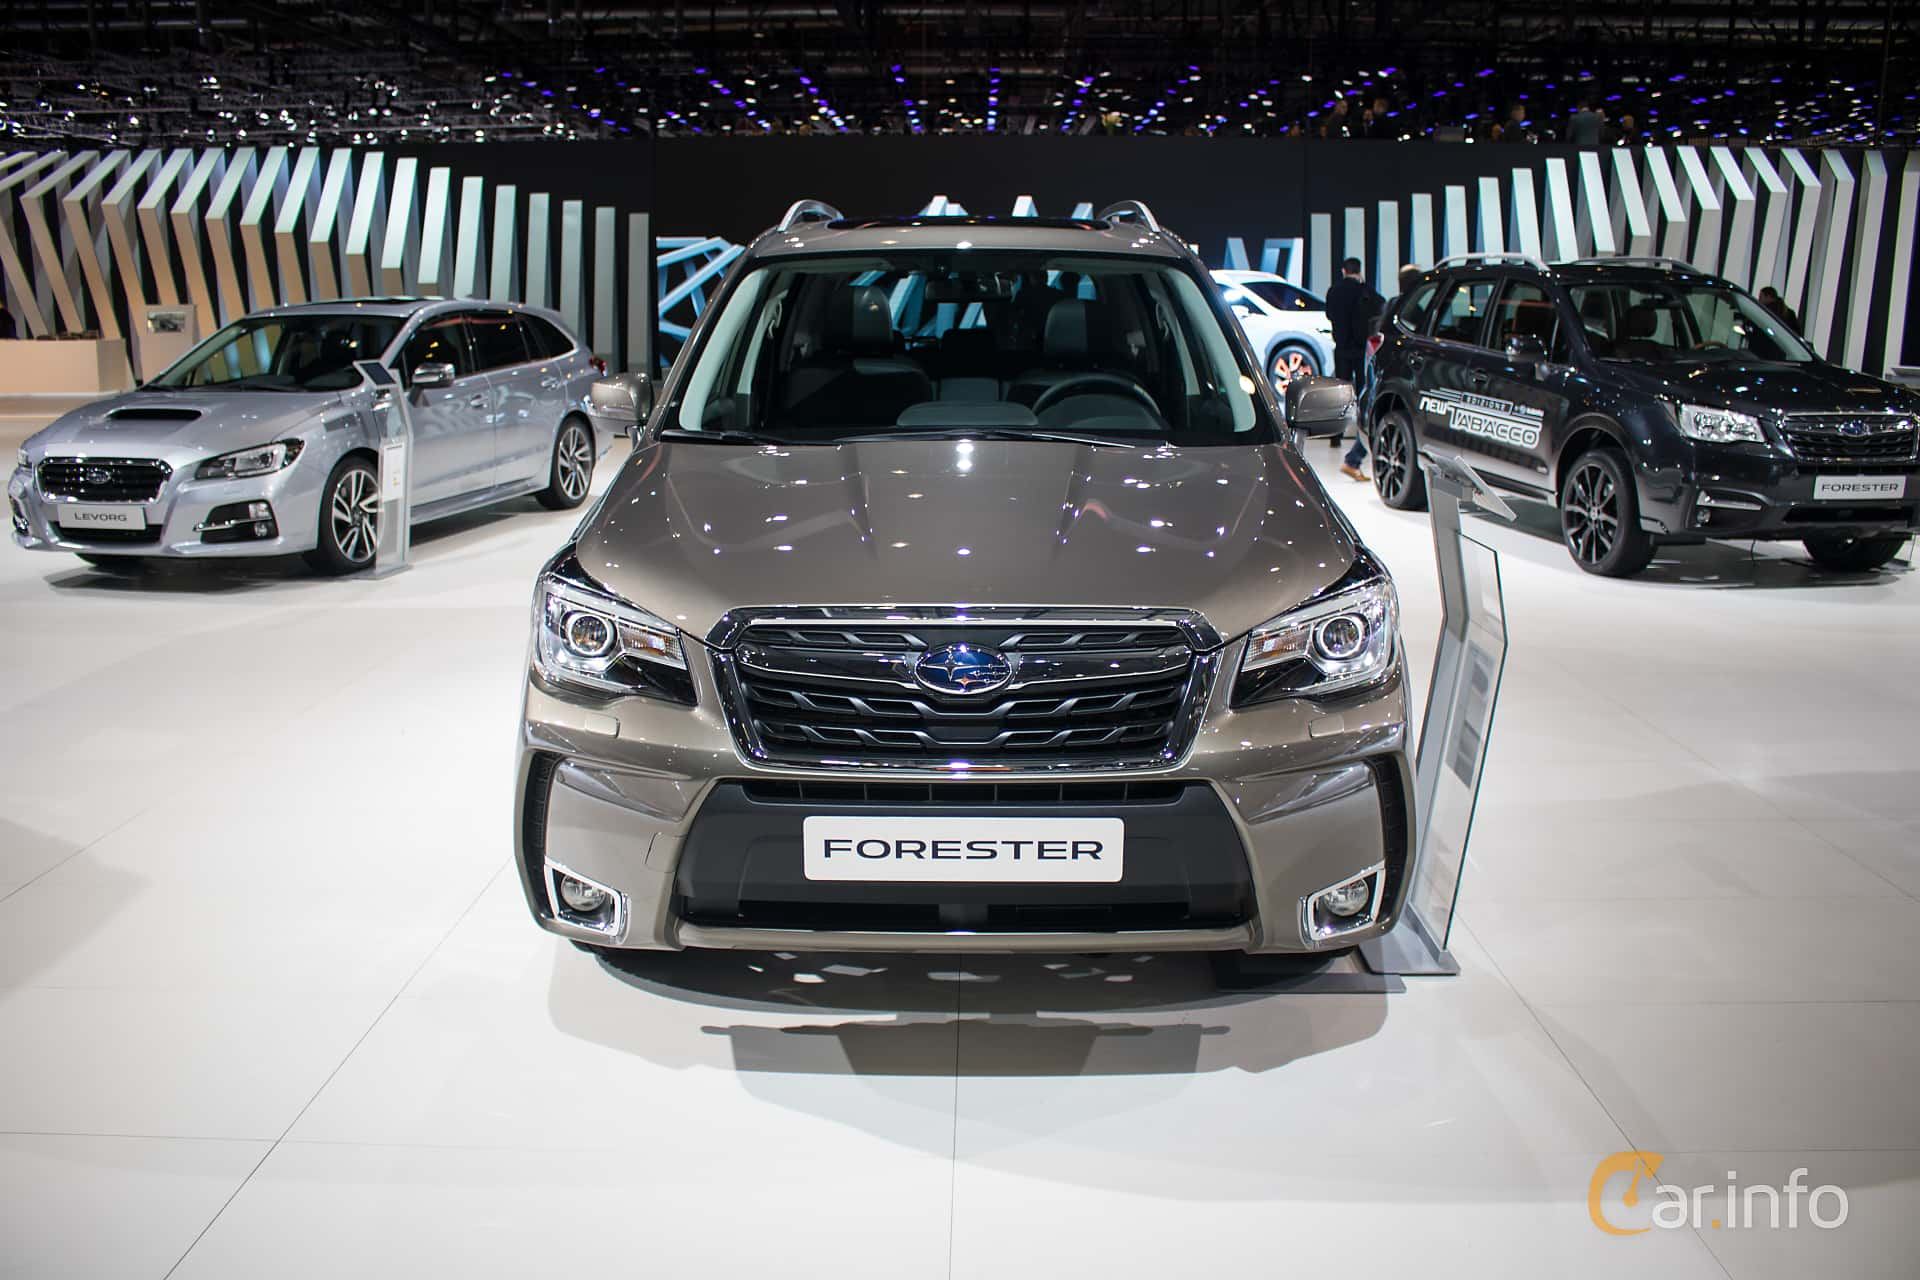 Subaru Forester 2.0 4WD Lineartronic, 147hp, 2016